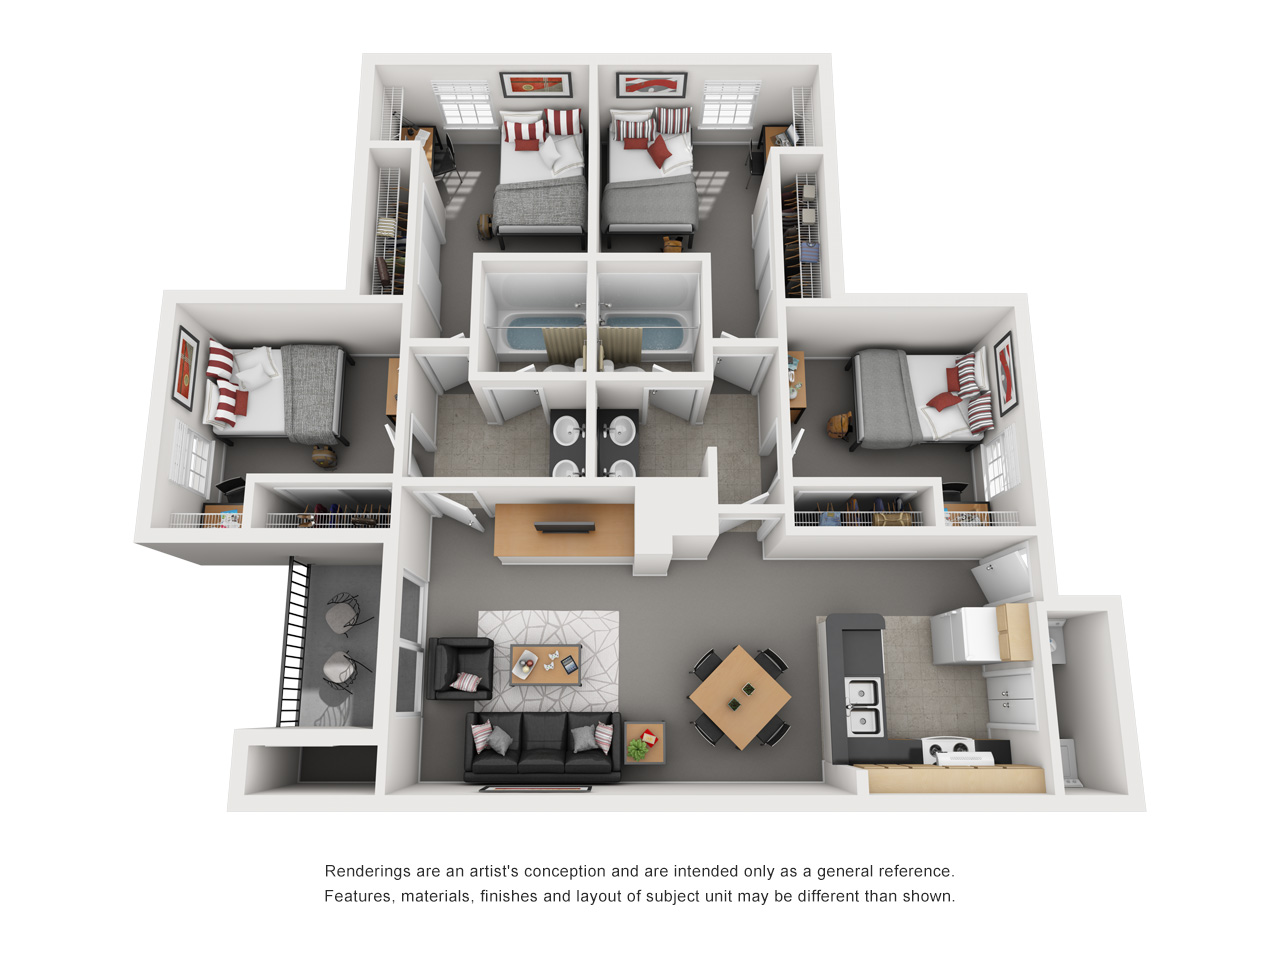 Floor plan of a 4 bed, 2 bath student apartment with a balcony